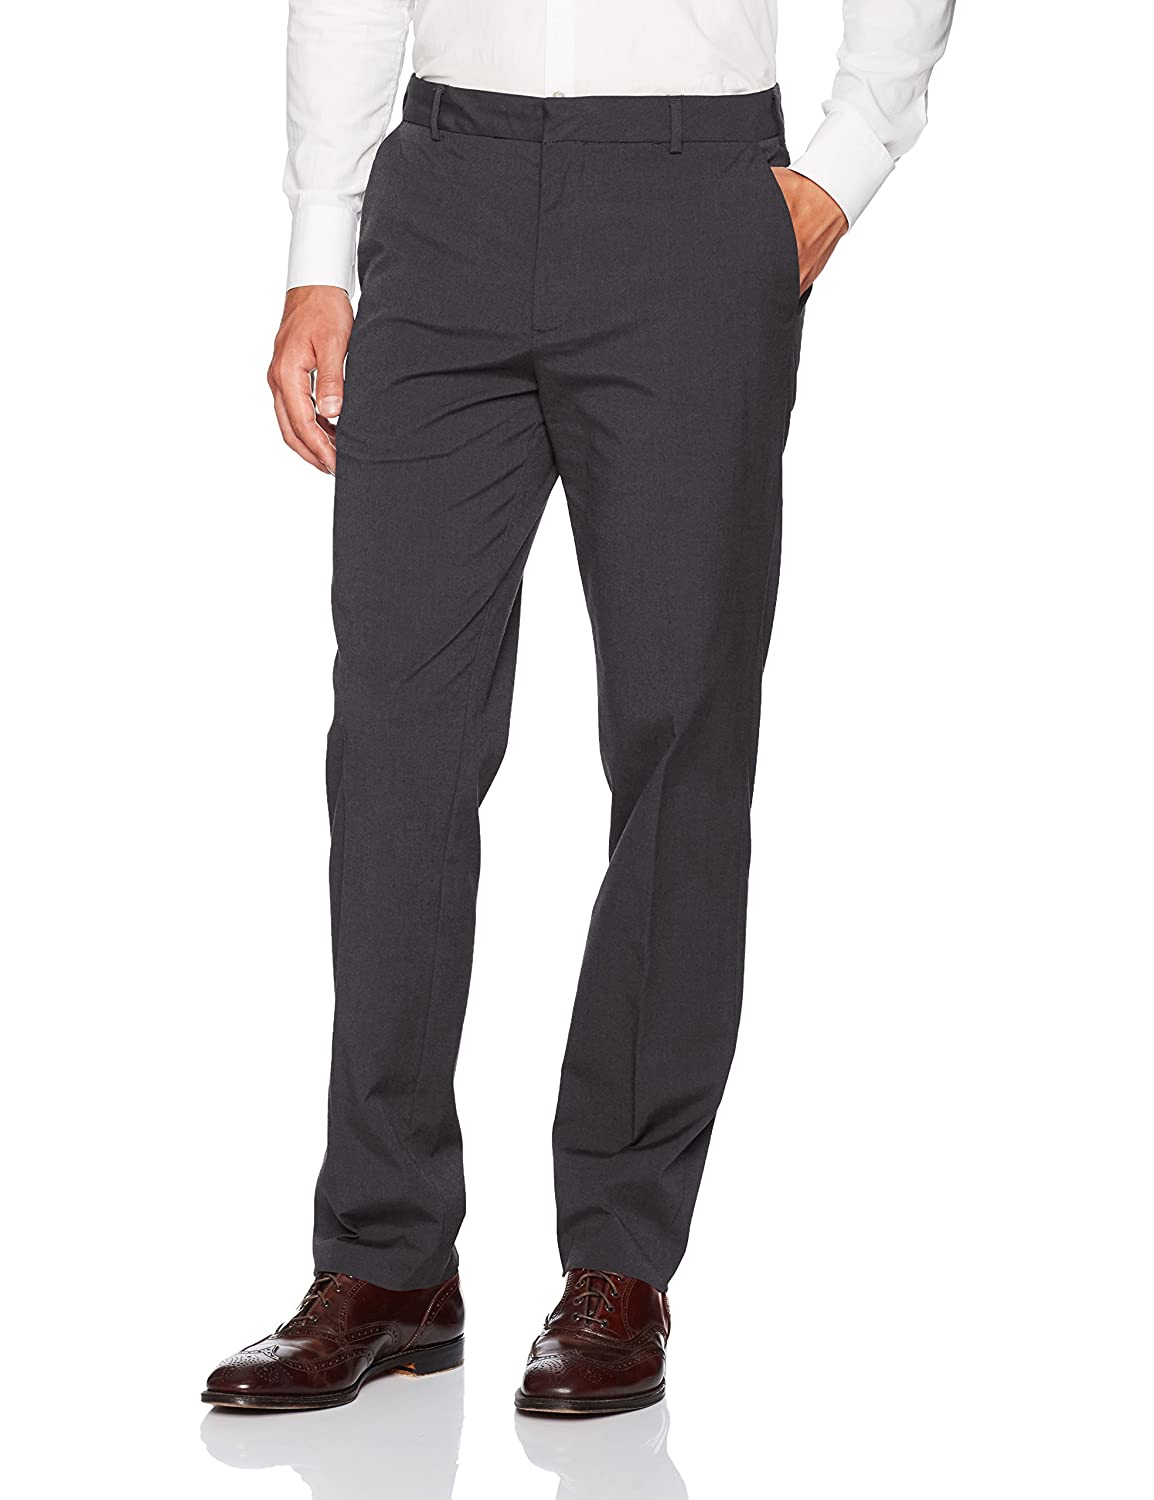 Van Heusen Mens Flex Flat Front Oxford Chino 505M124